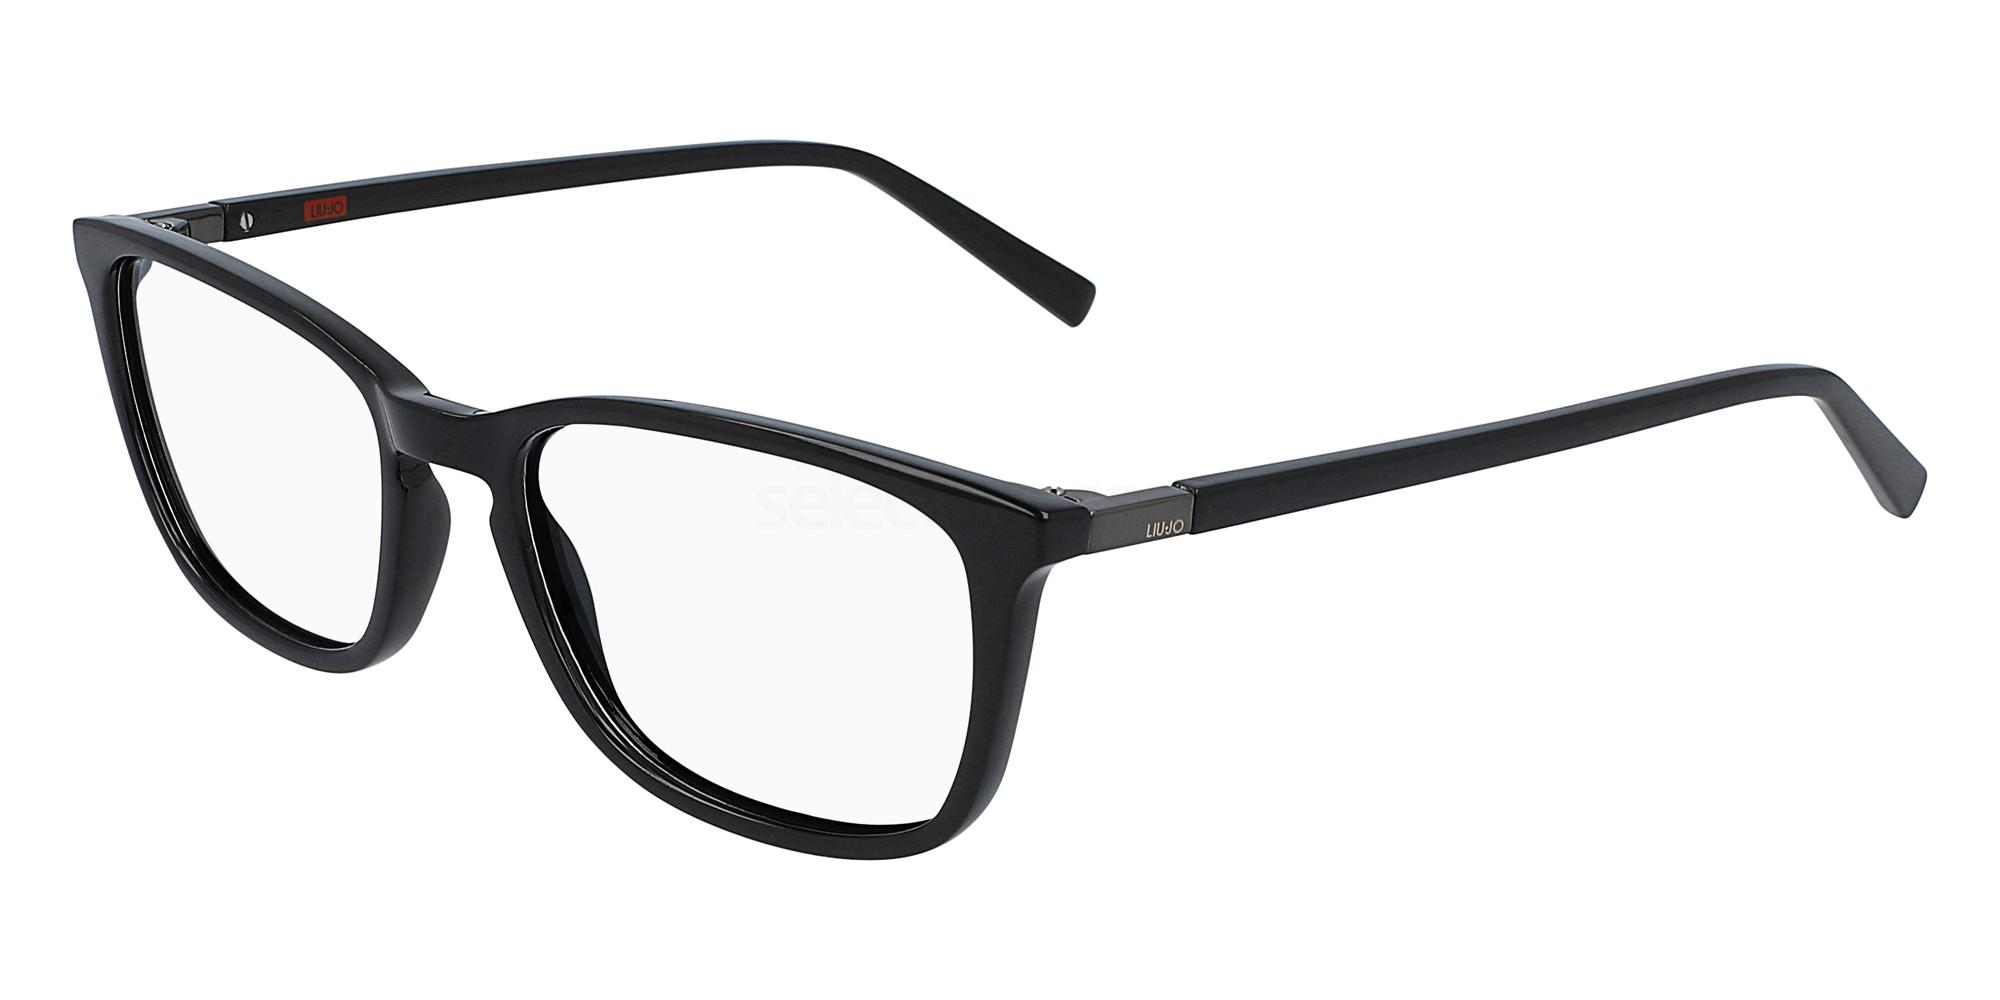 001 LJ2718 Glasses, Liu Jo